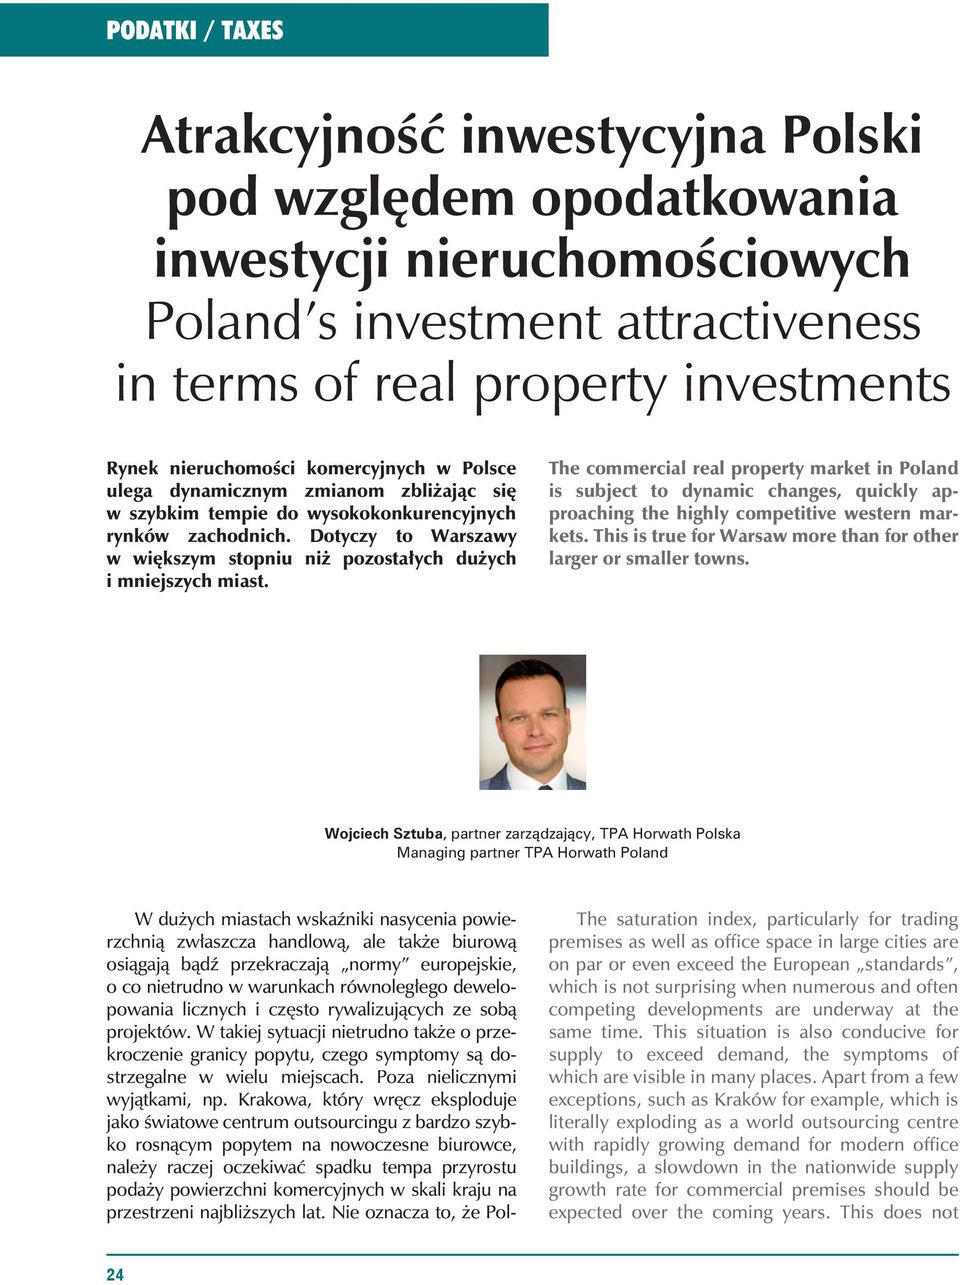 The commercial real property market in Poland is subject to dynamic changes, quickly approaching the highly competitive western markets.